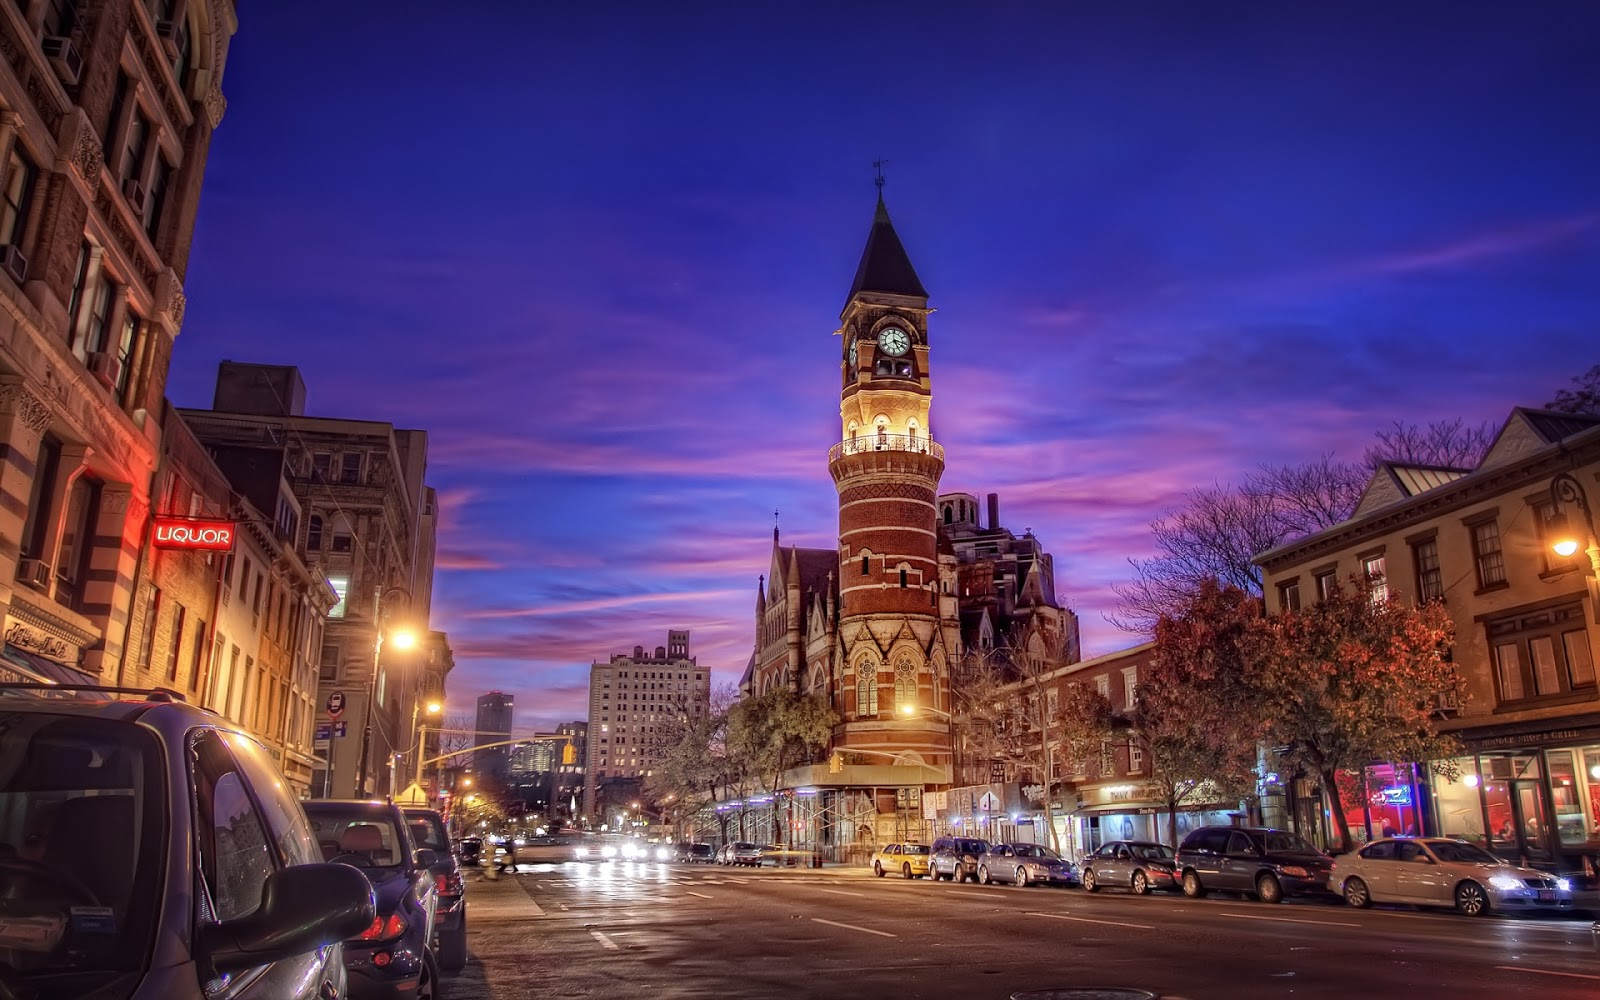 Jefferson Market Library, New York